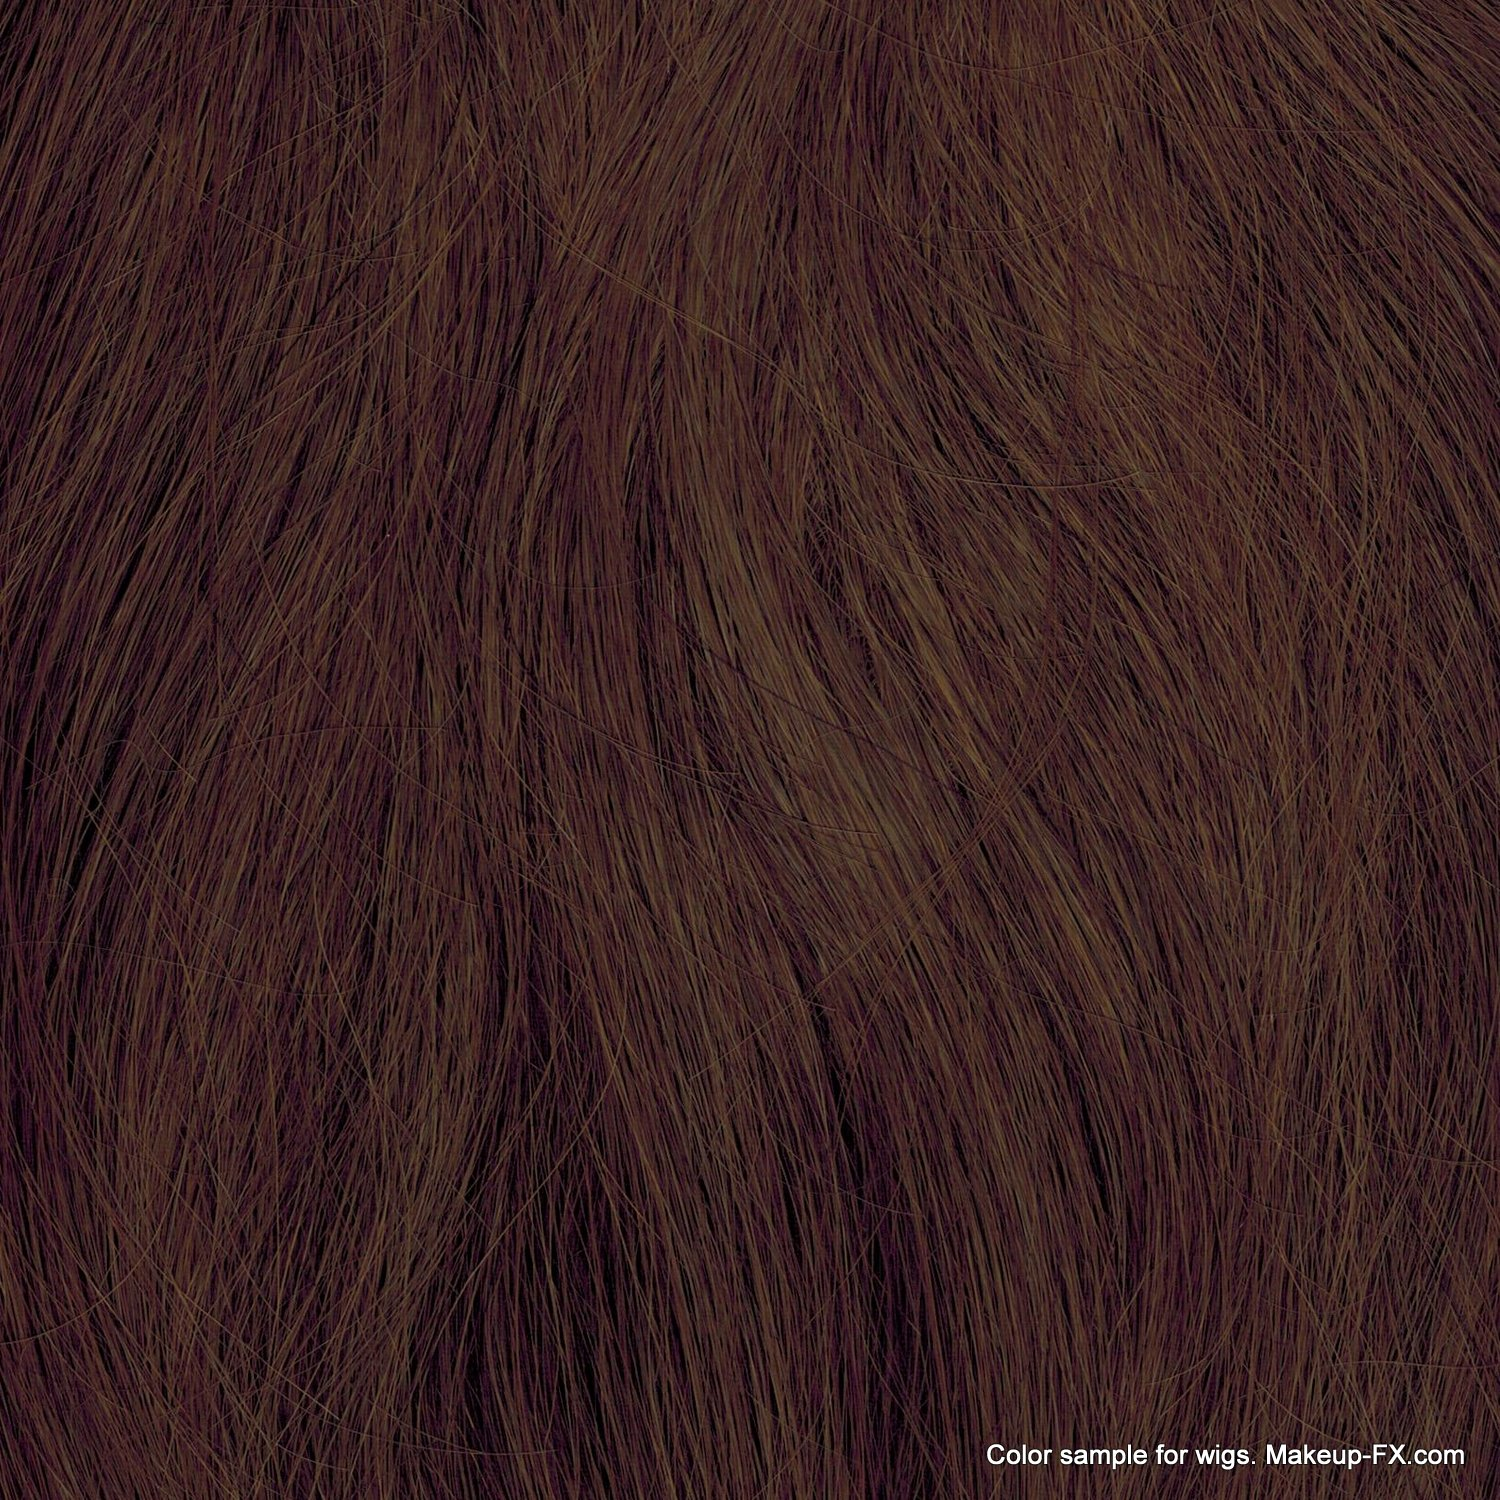 Color chart for wigs - Dark Brown Wig Colors